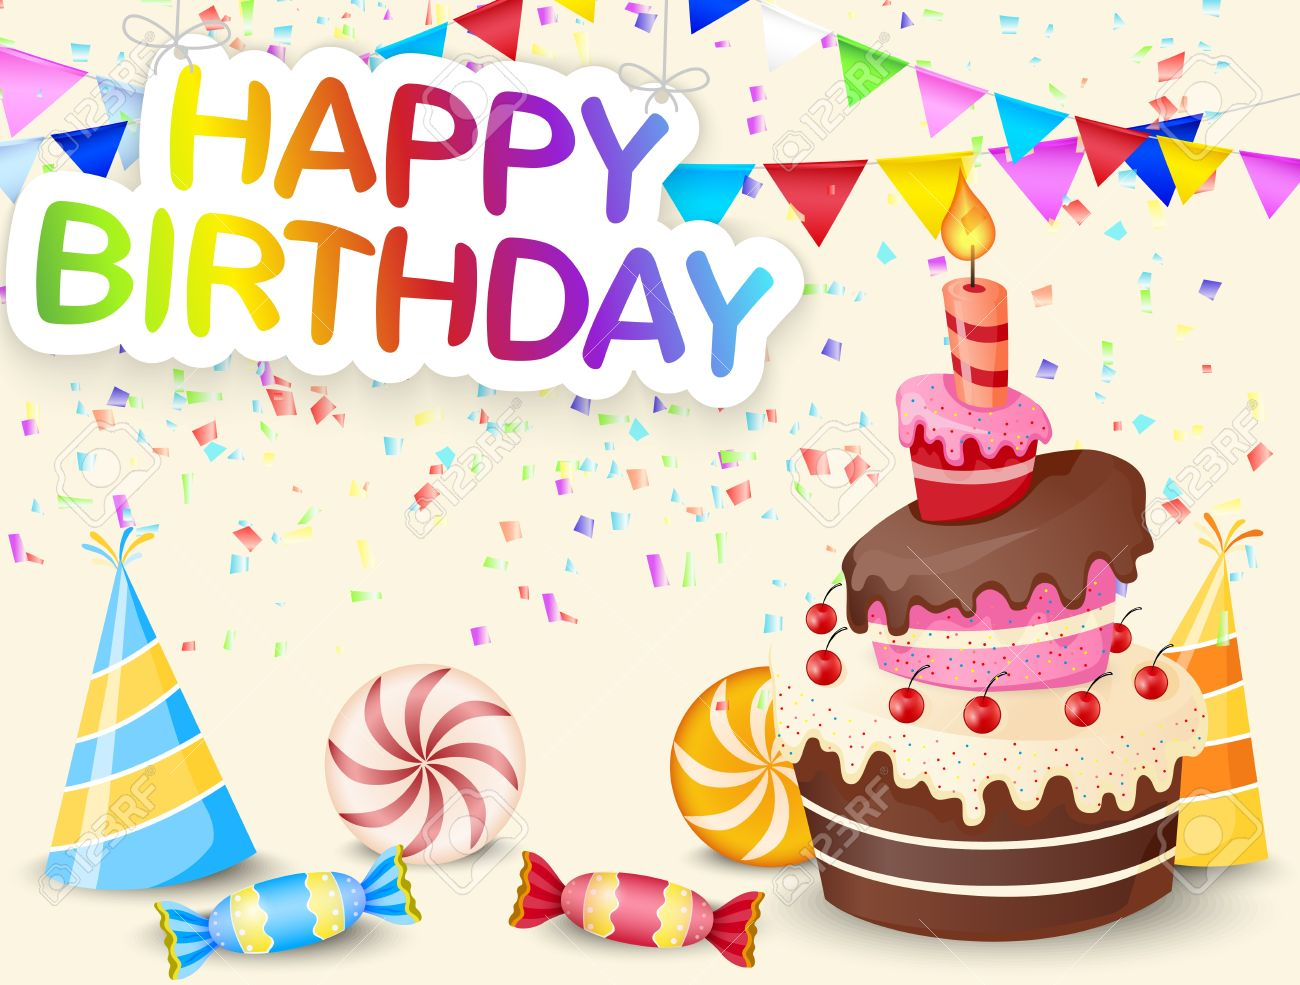 Birthday Background With Cake Cartoon Stock Vector